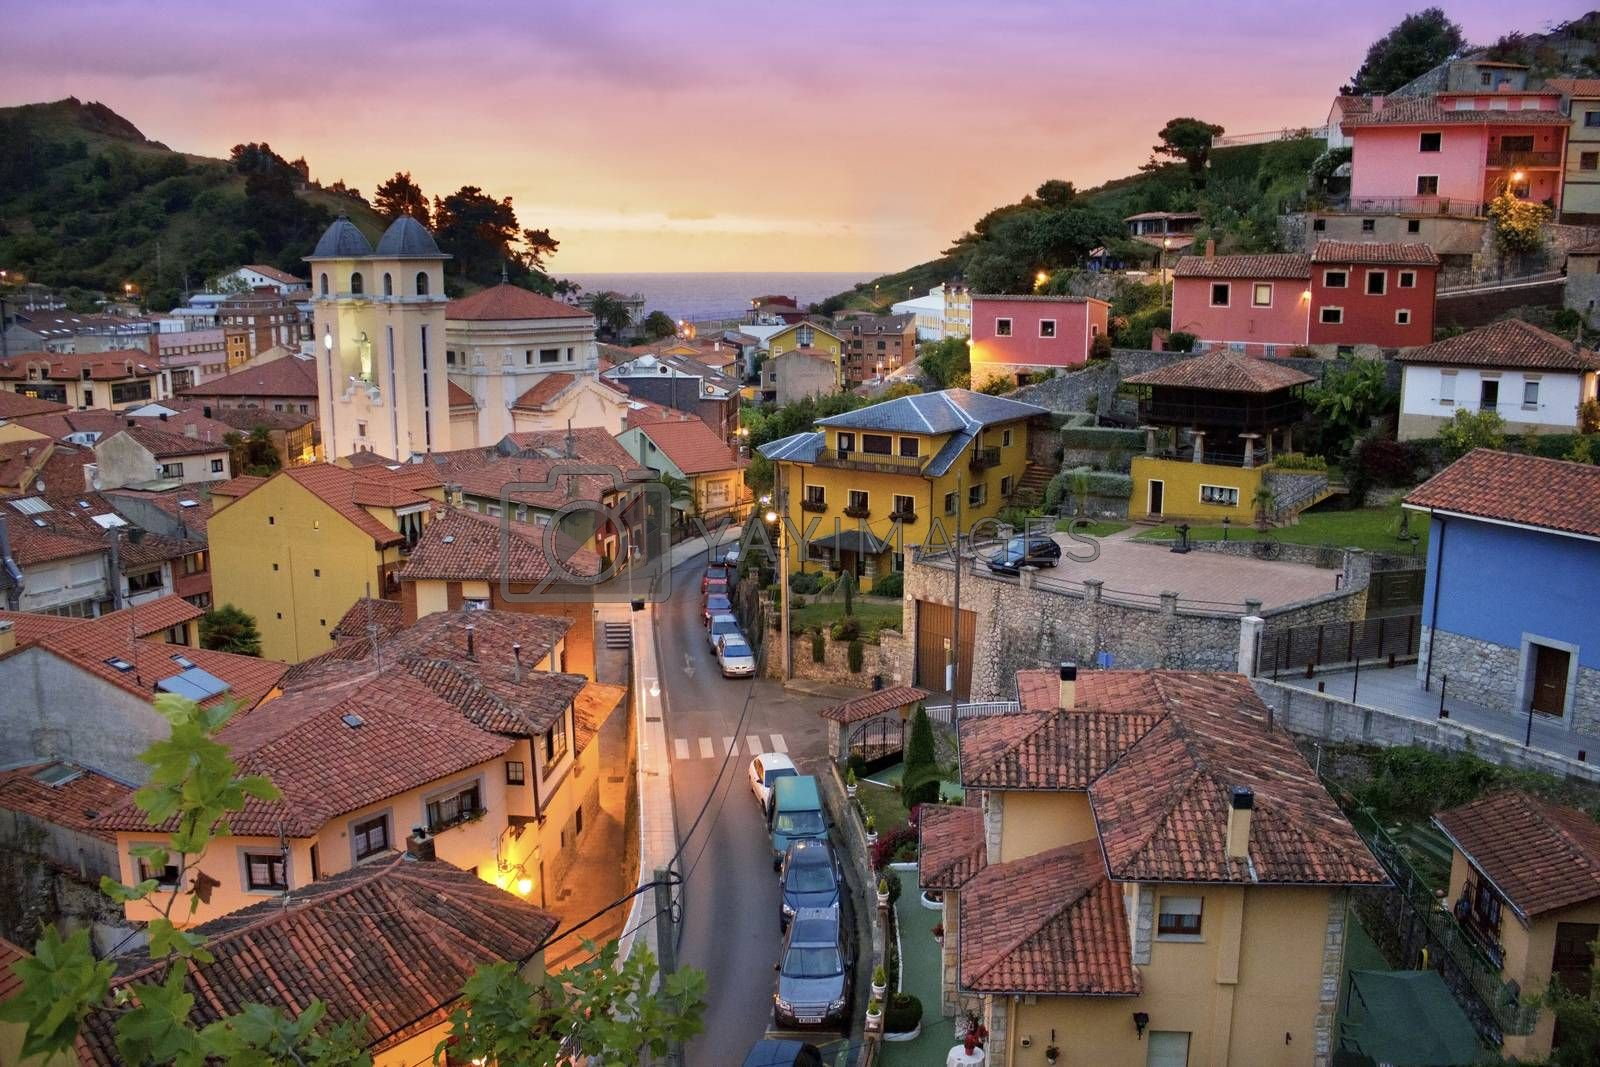 Little village of Asturias, Spain, next to the sea. This photography show the sunset in this beautiful landscape, with beautiful and colorful houses.